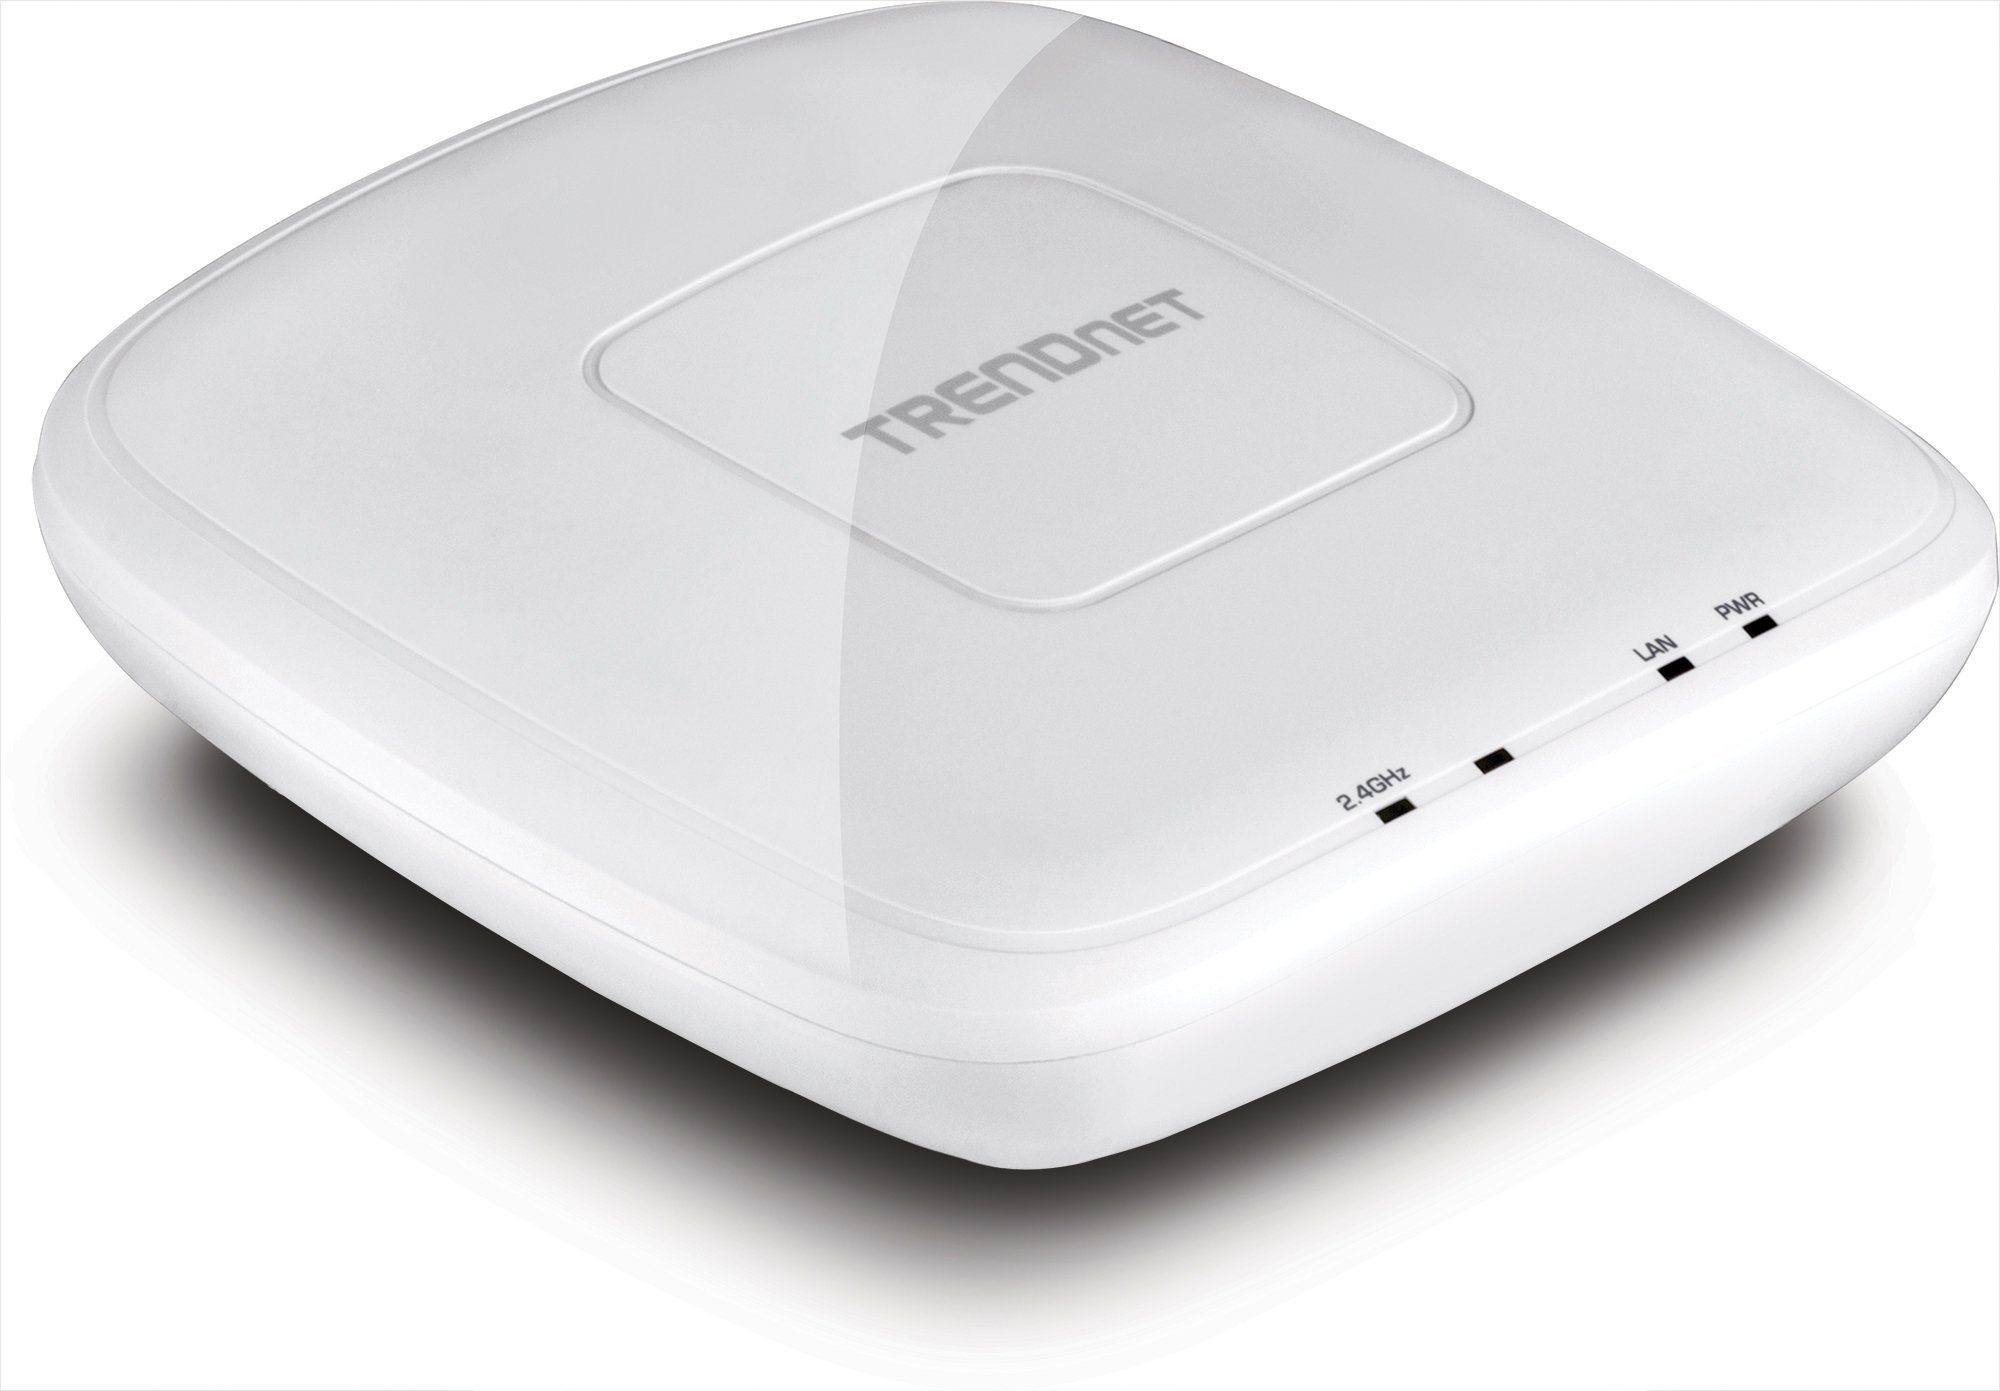 TRENDnet N300 Wireless PoE Access Point with Software Controller, Gigabit, AP, Client, 802.3af (TEW-755AP)